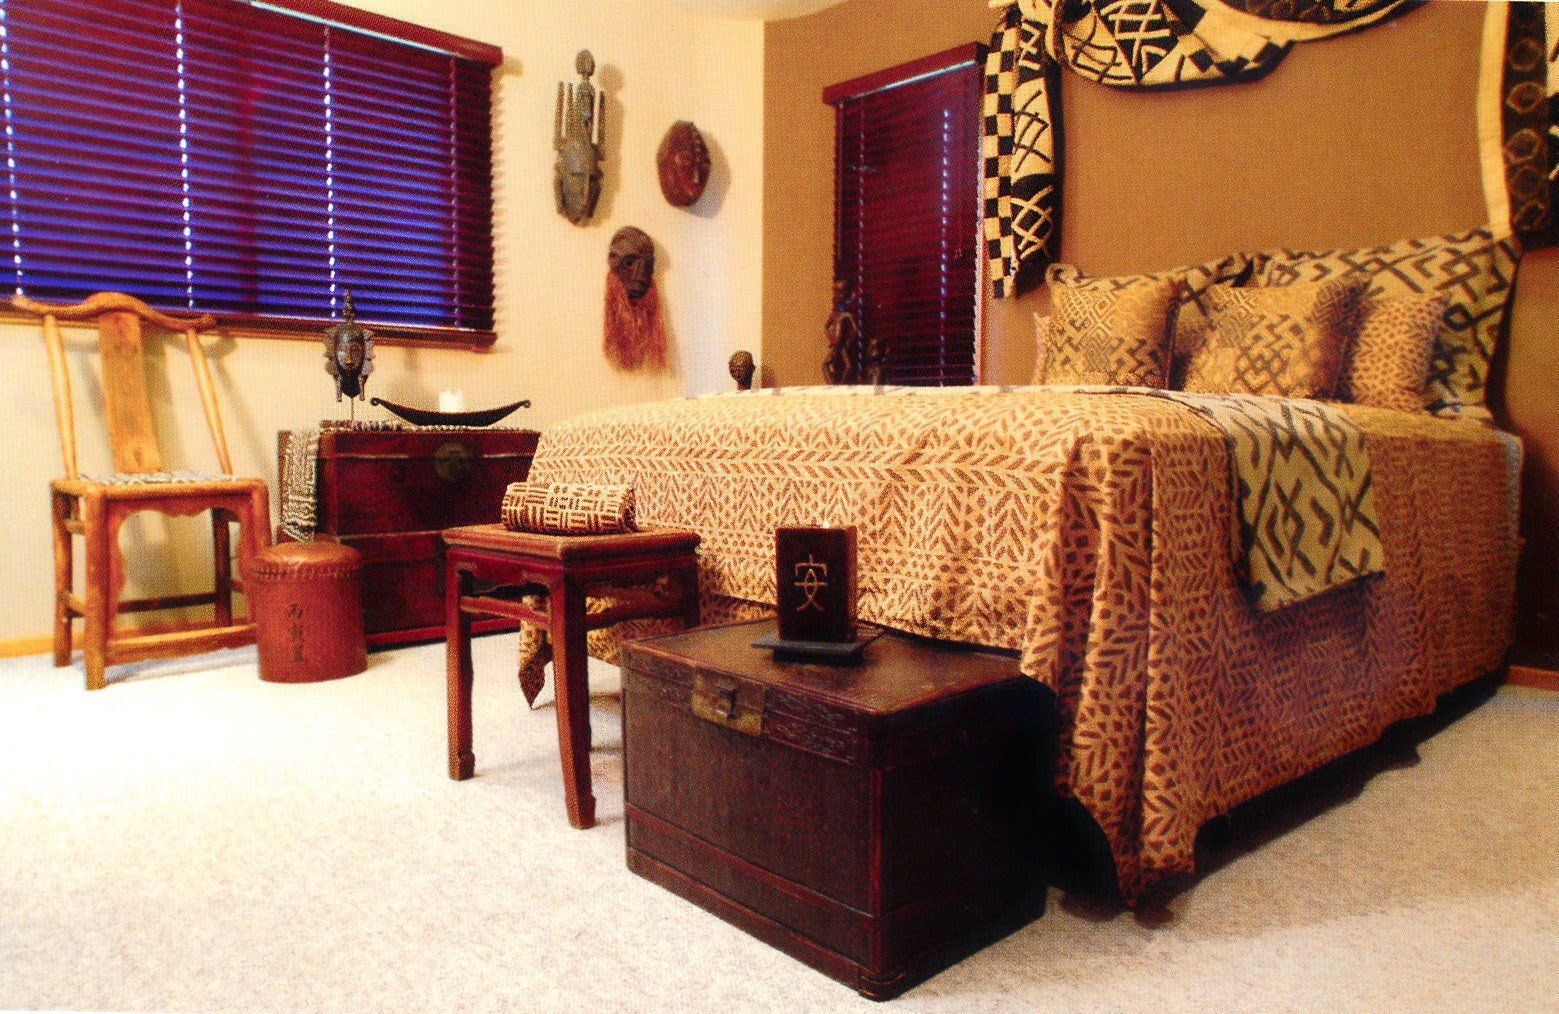 Foundation dezin decor bedroom design in african way for Jazz living room ideas